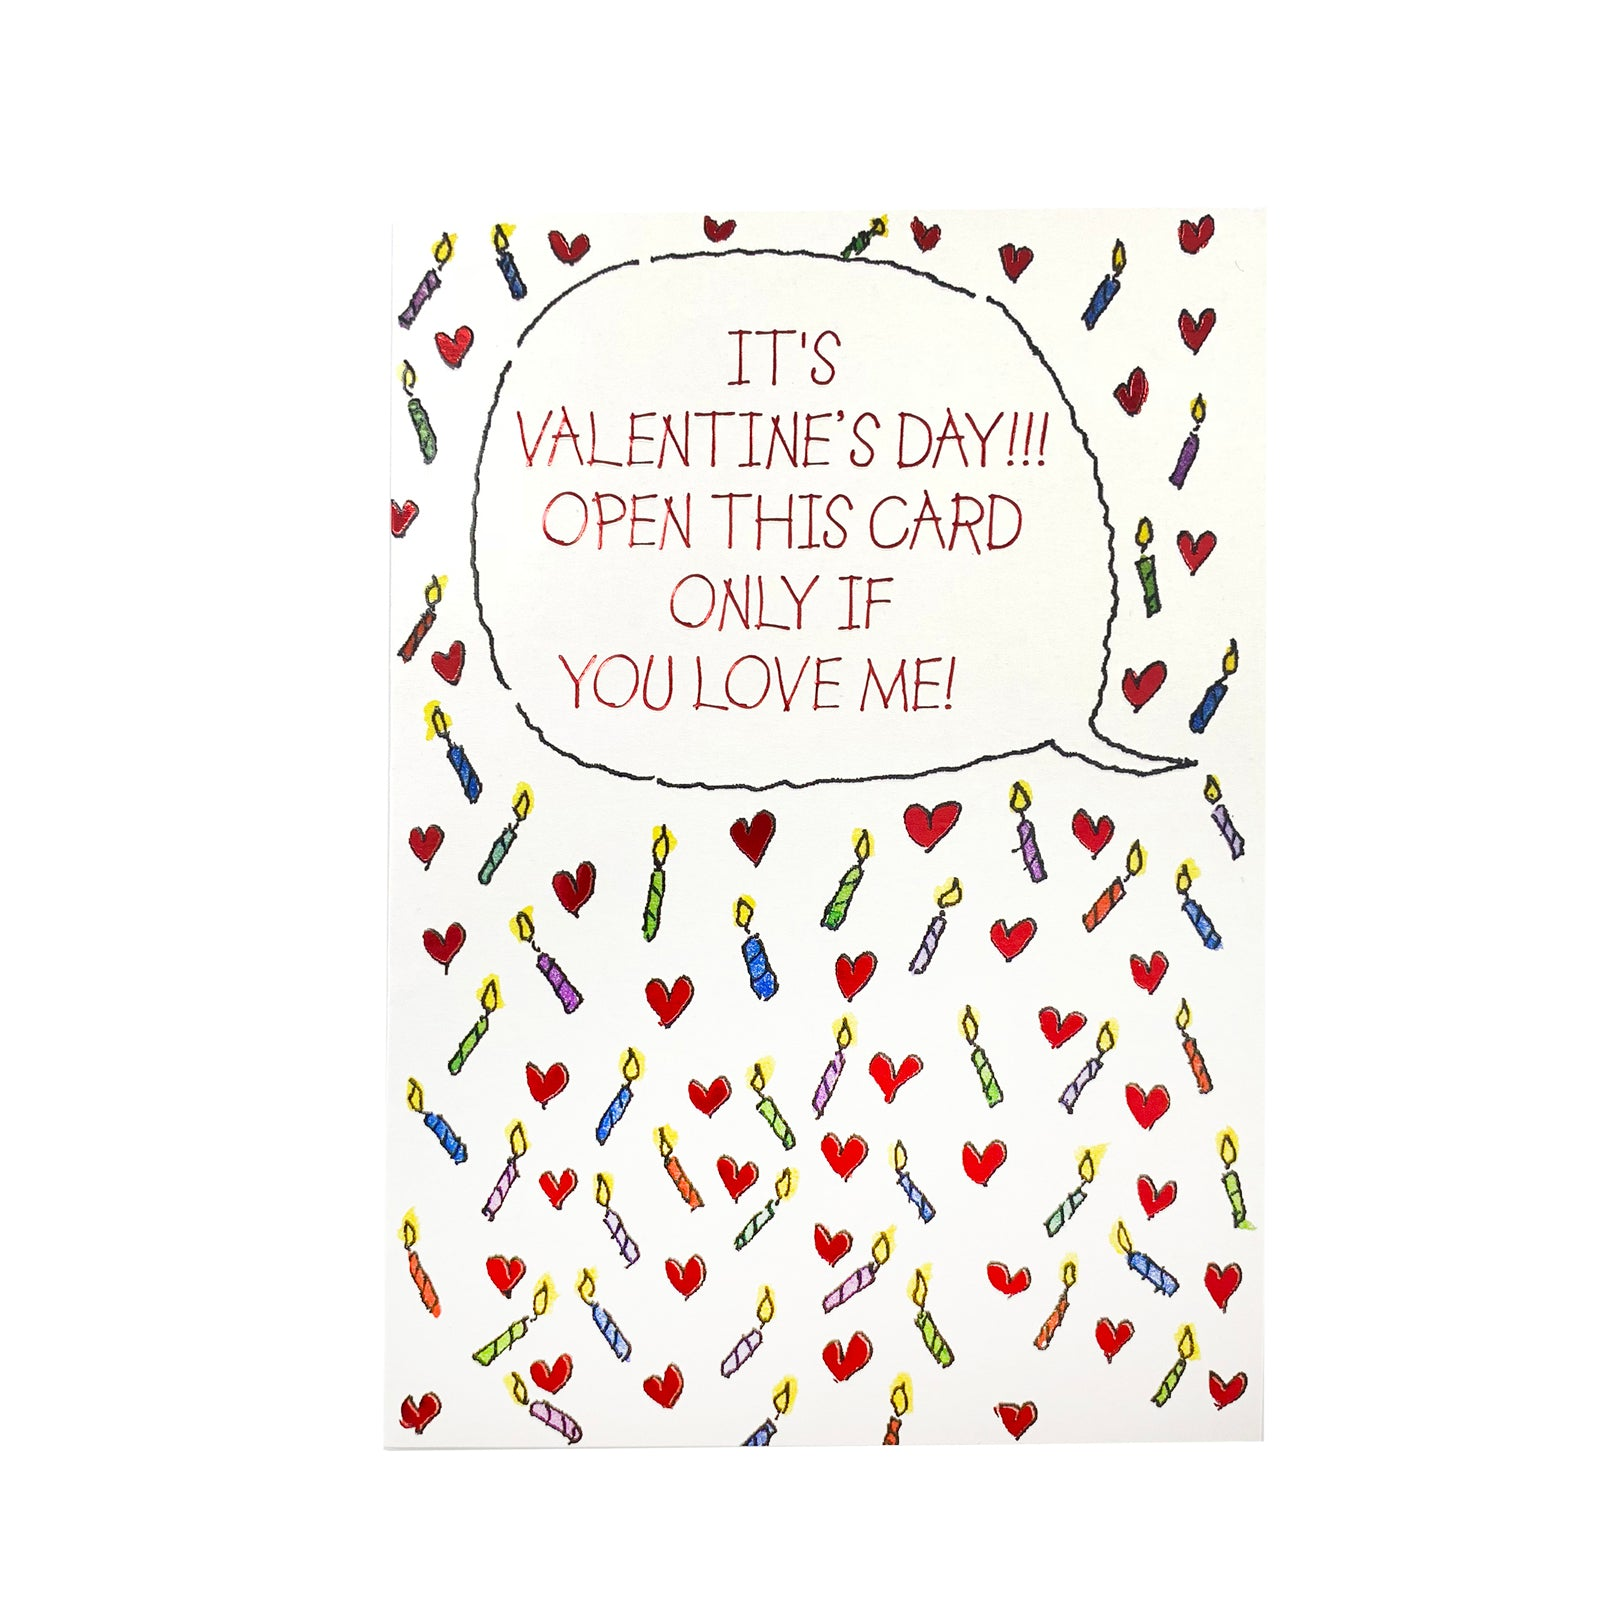 Designer Greetings Valentine's Day Card - Open This Card Candles